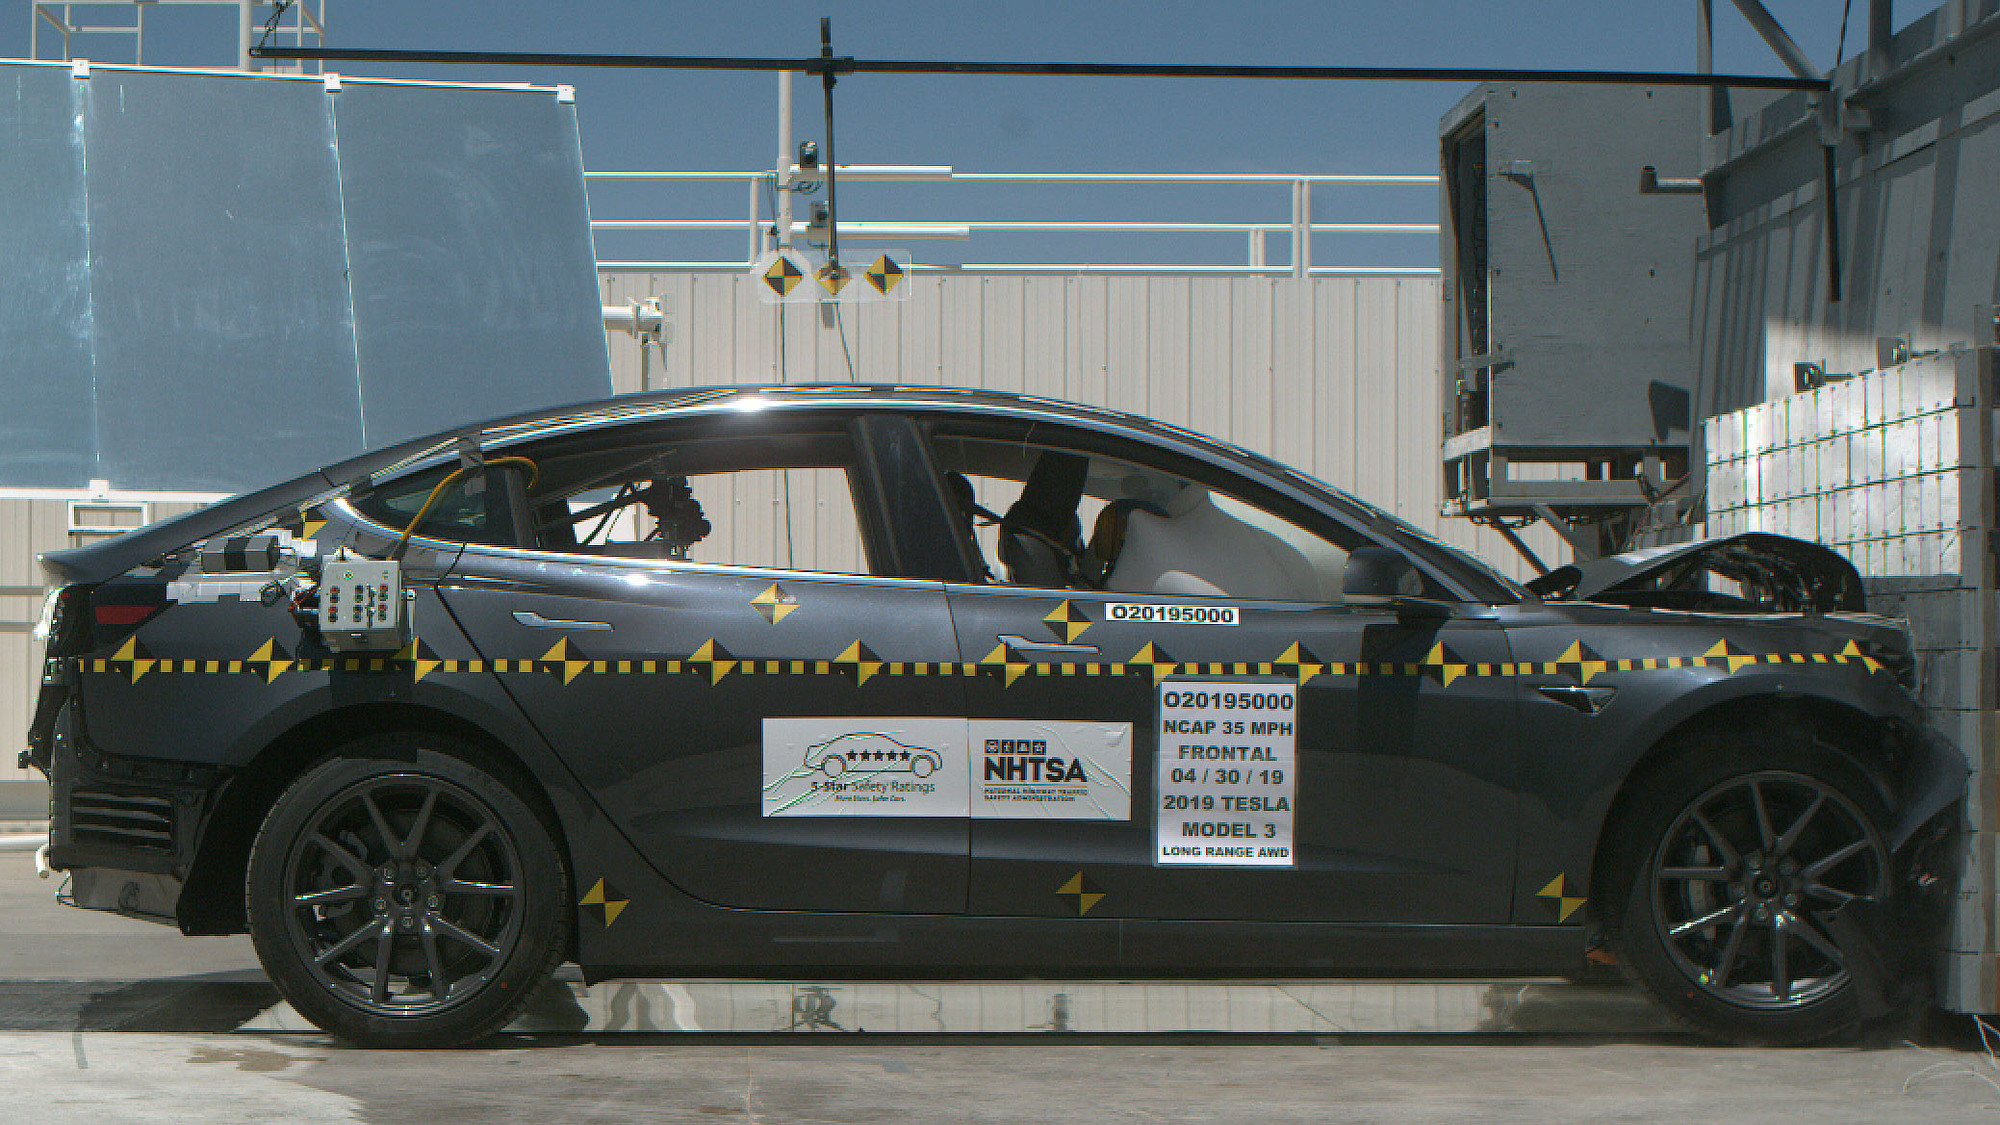 The Week In Reverse - Green Car Photos, News, Reviews, and